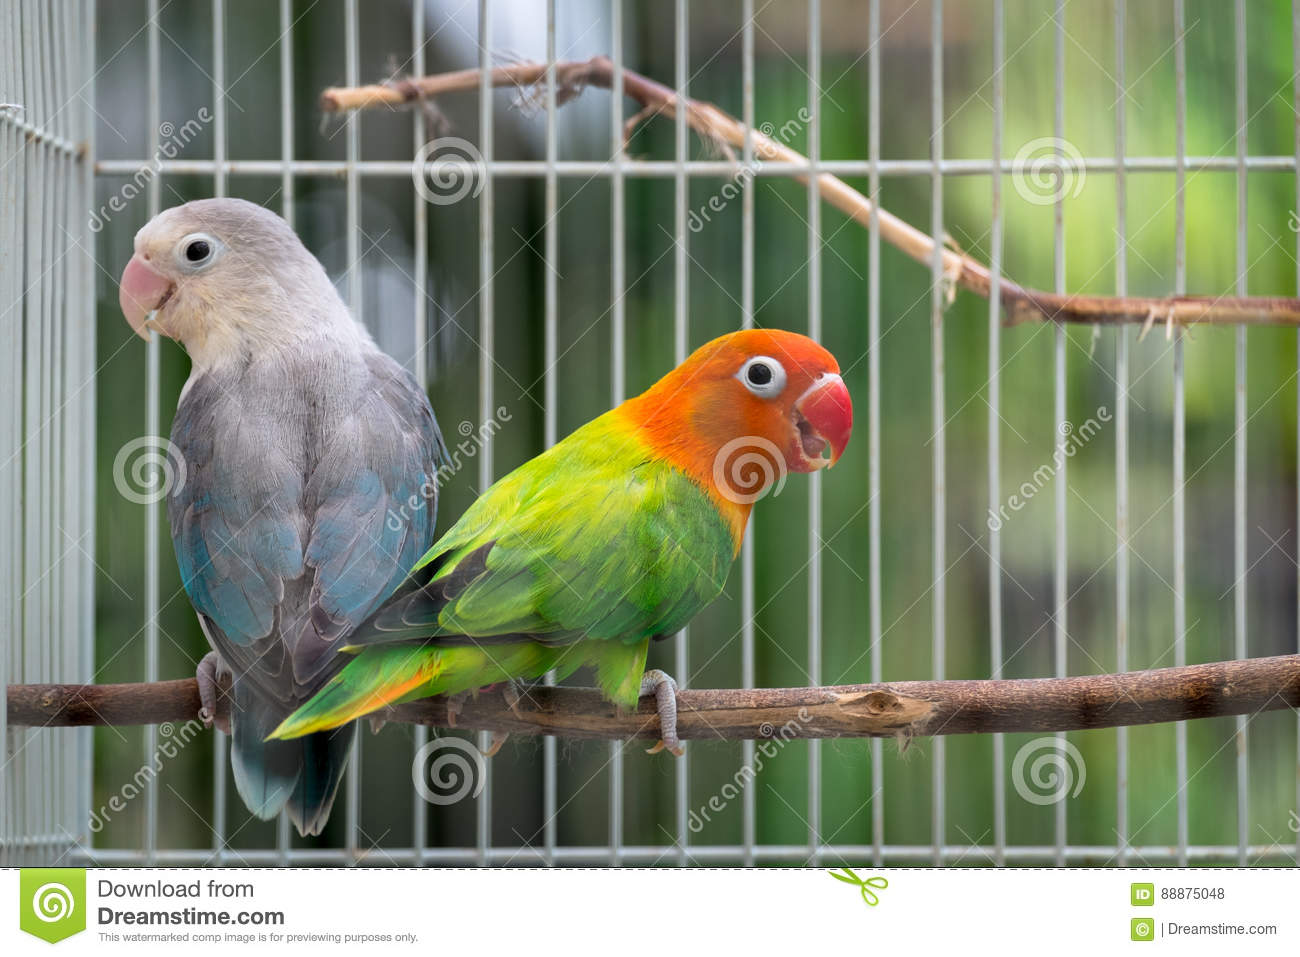 the couple in the cage